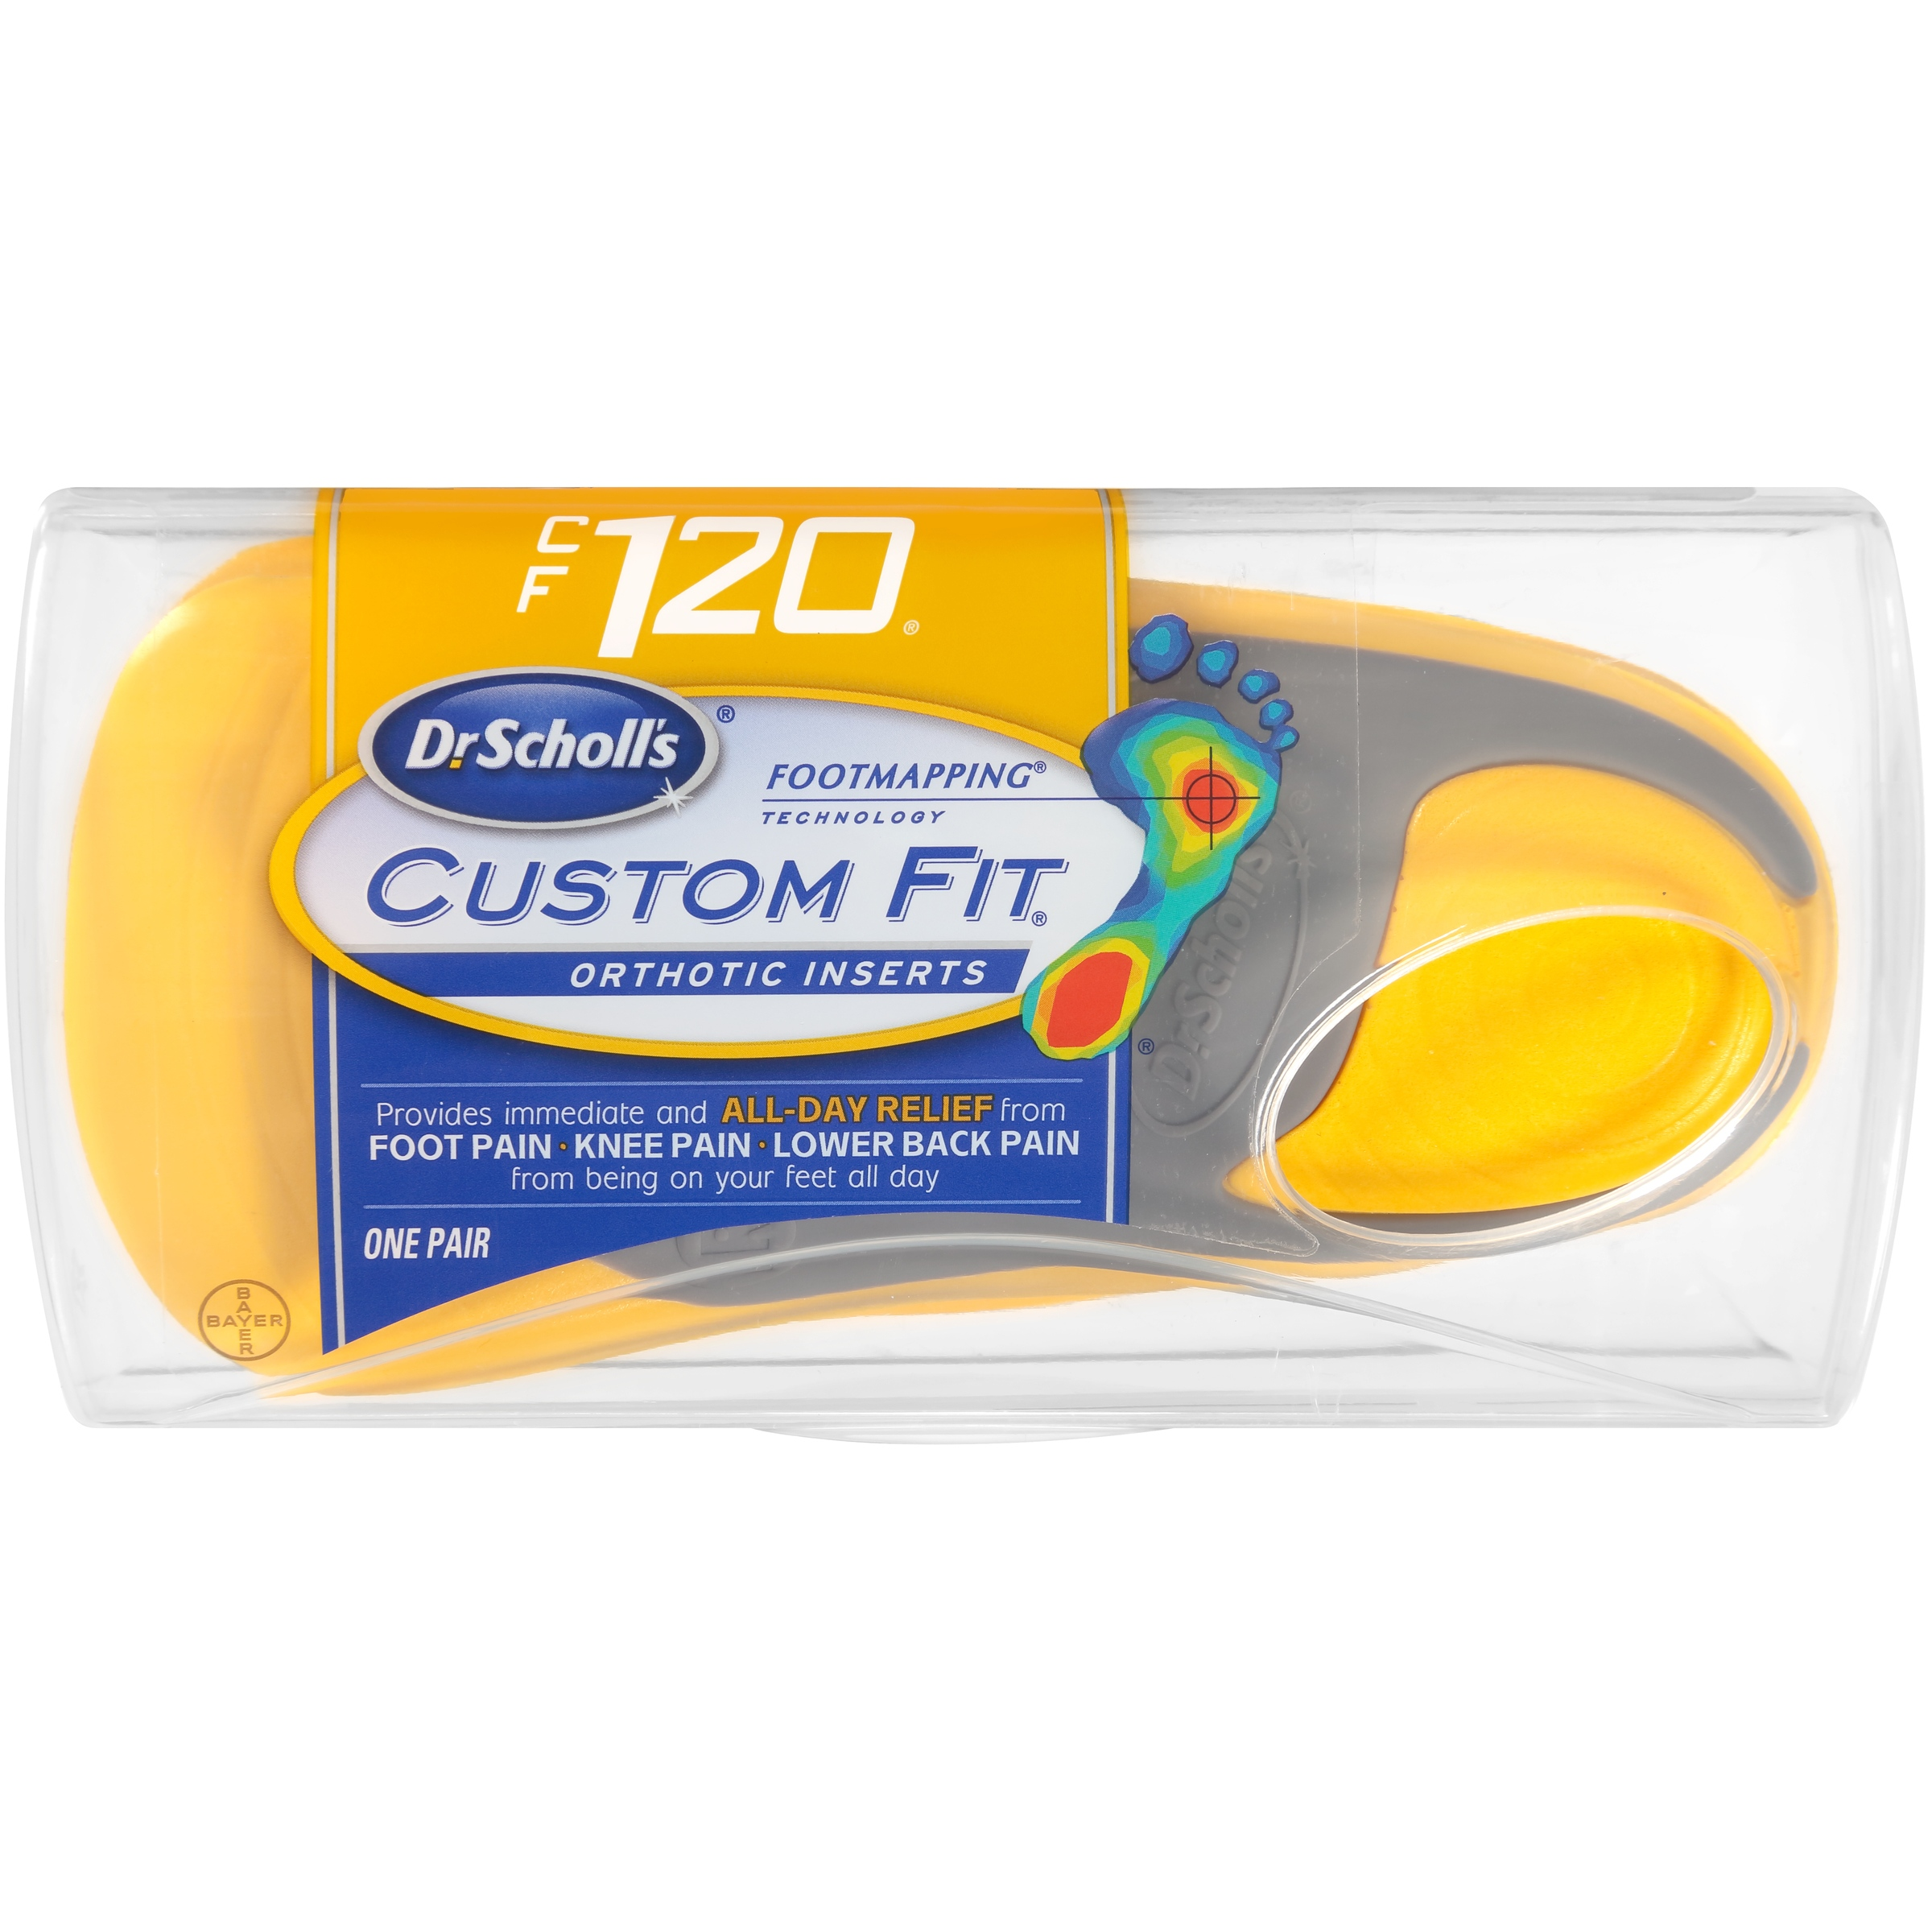 Dr. Scholl's® Custom Fit® Orthotic Inserts CF120, 1 Pair